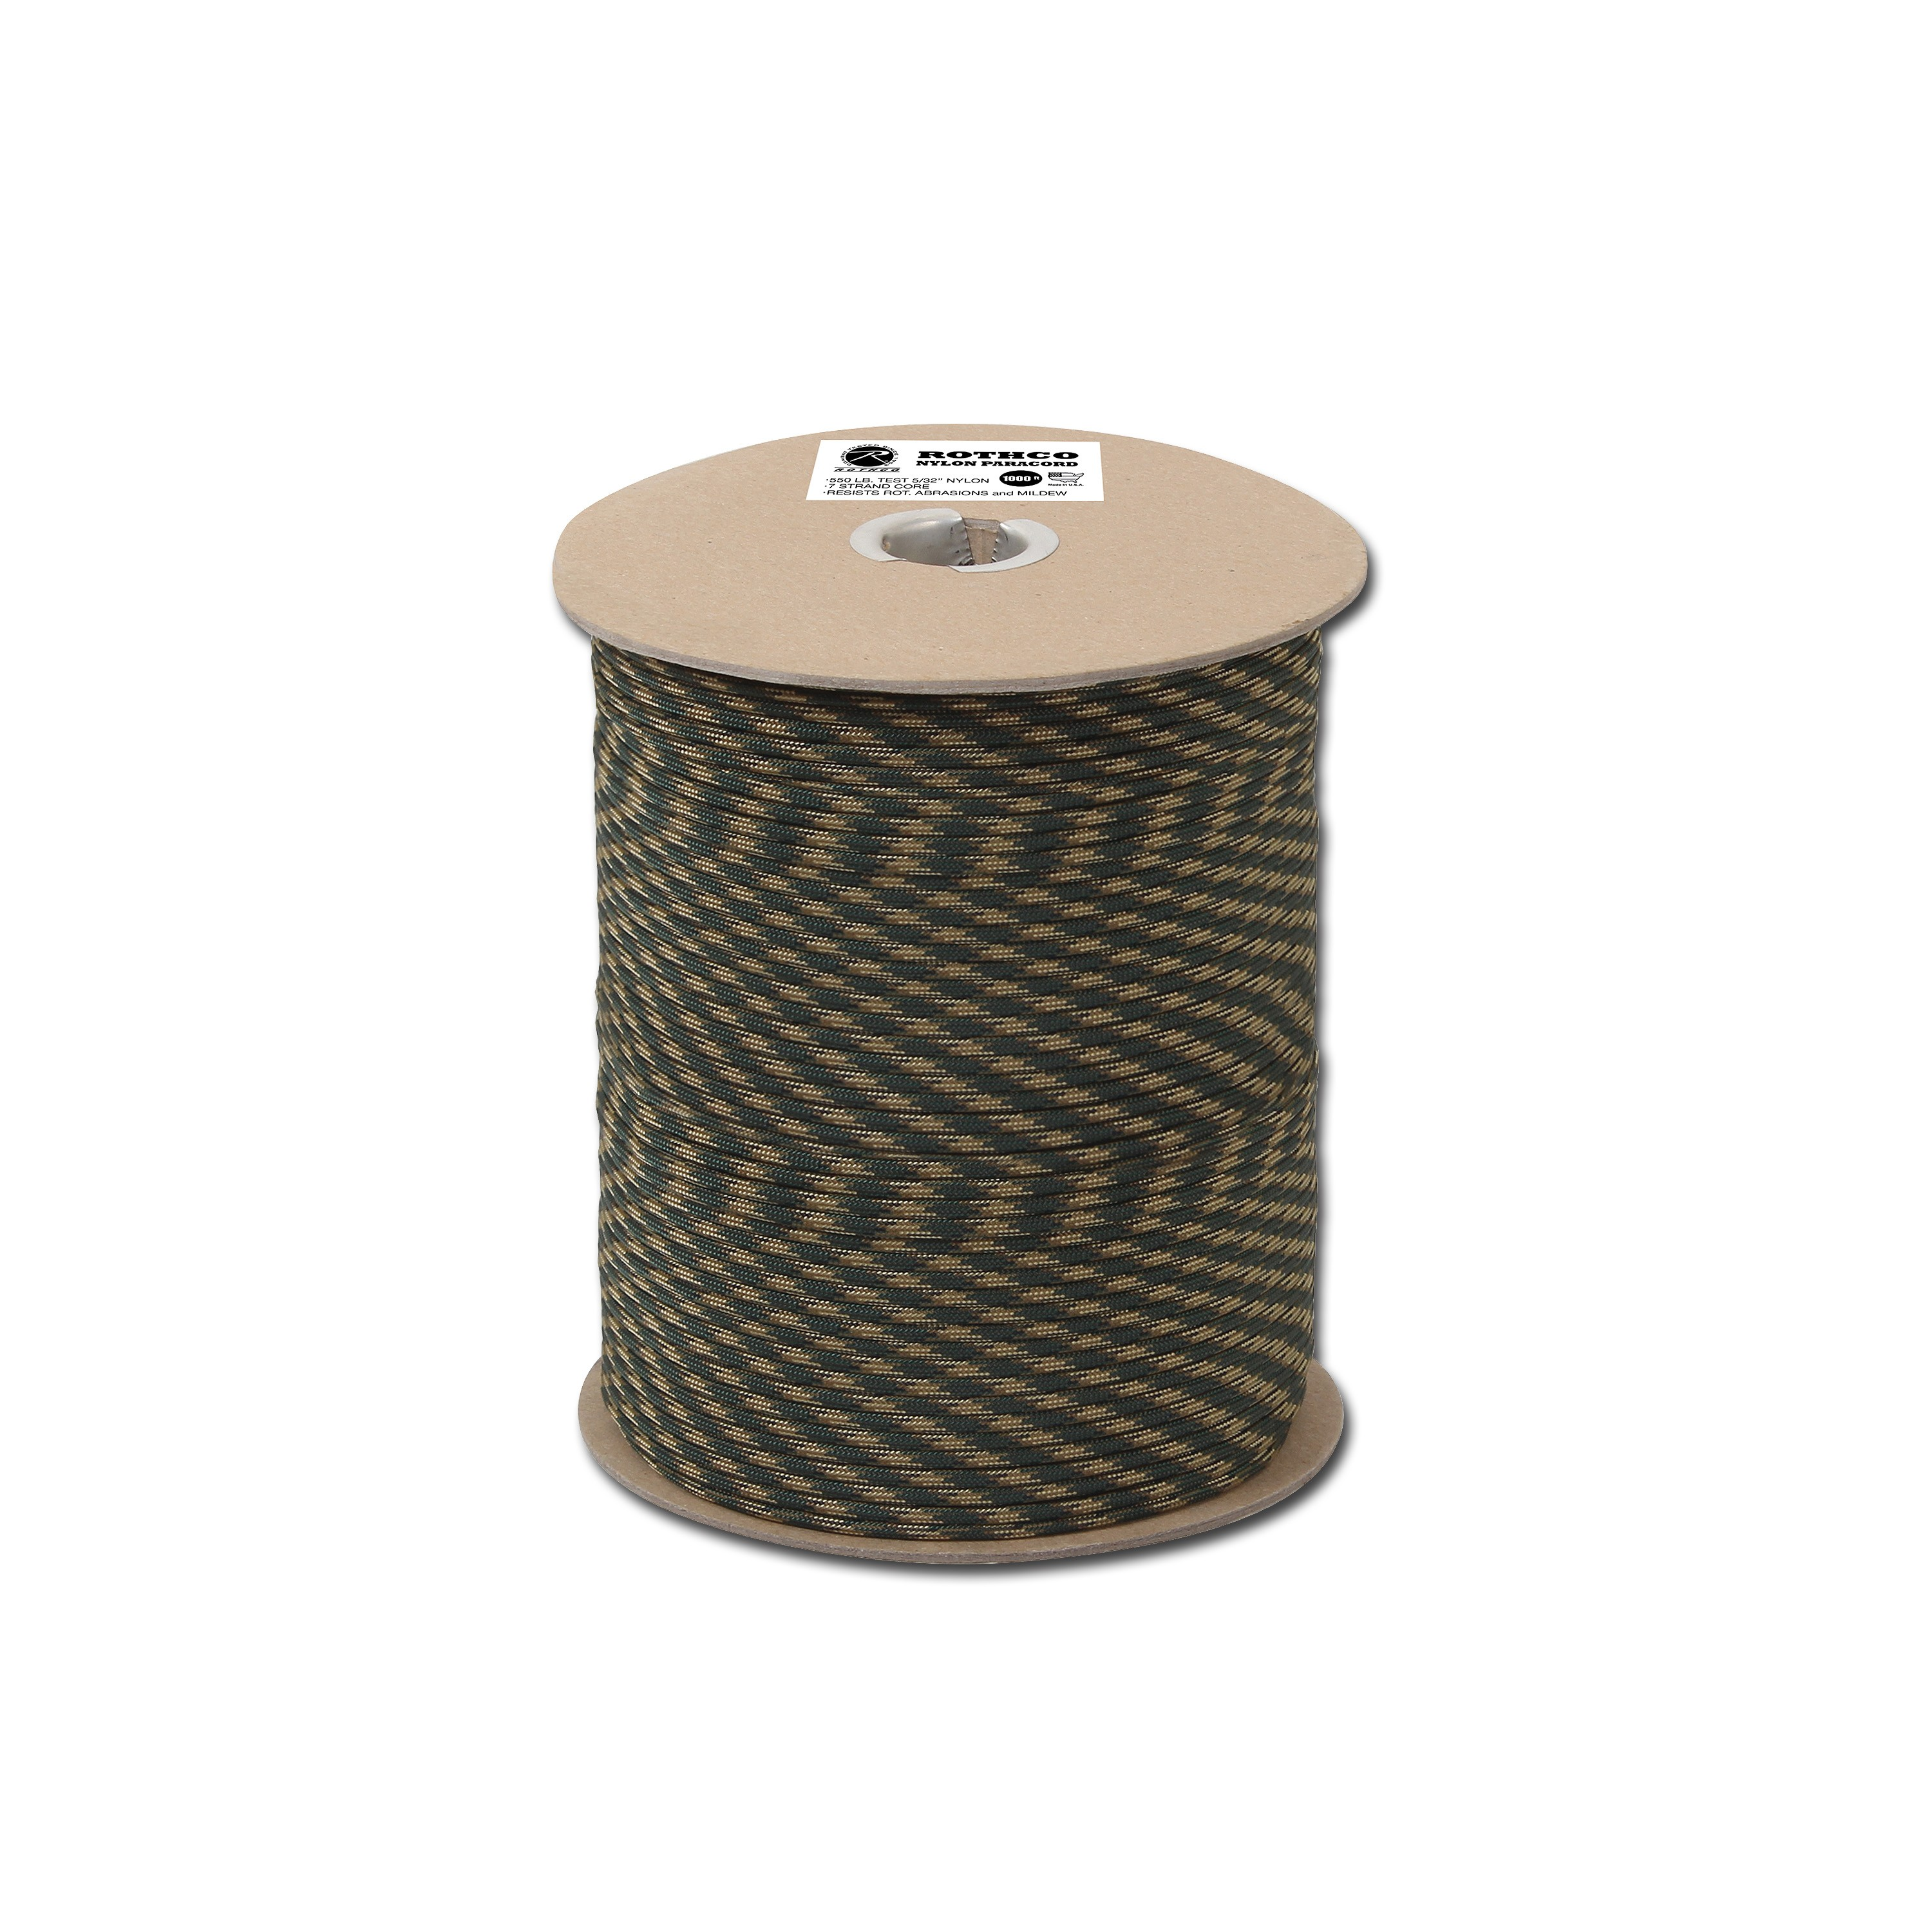 Carrete Paracord Rothco Nylon